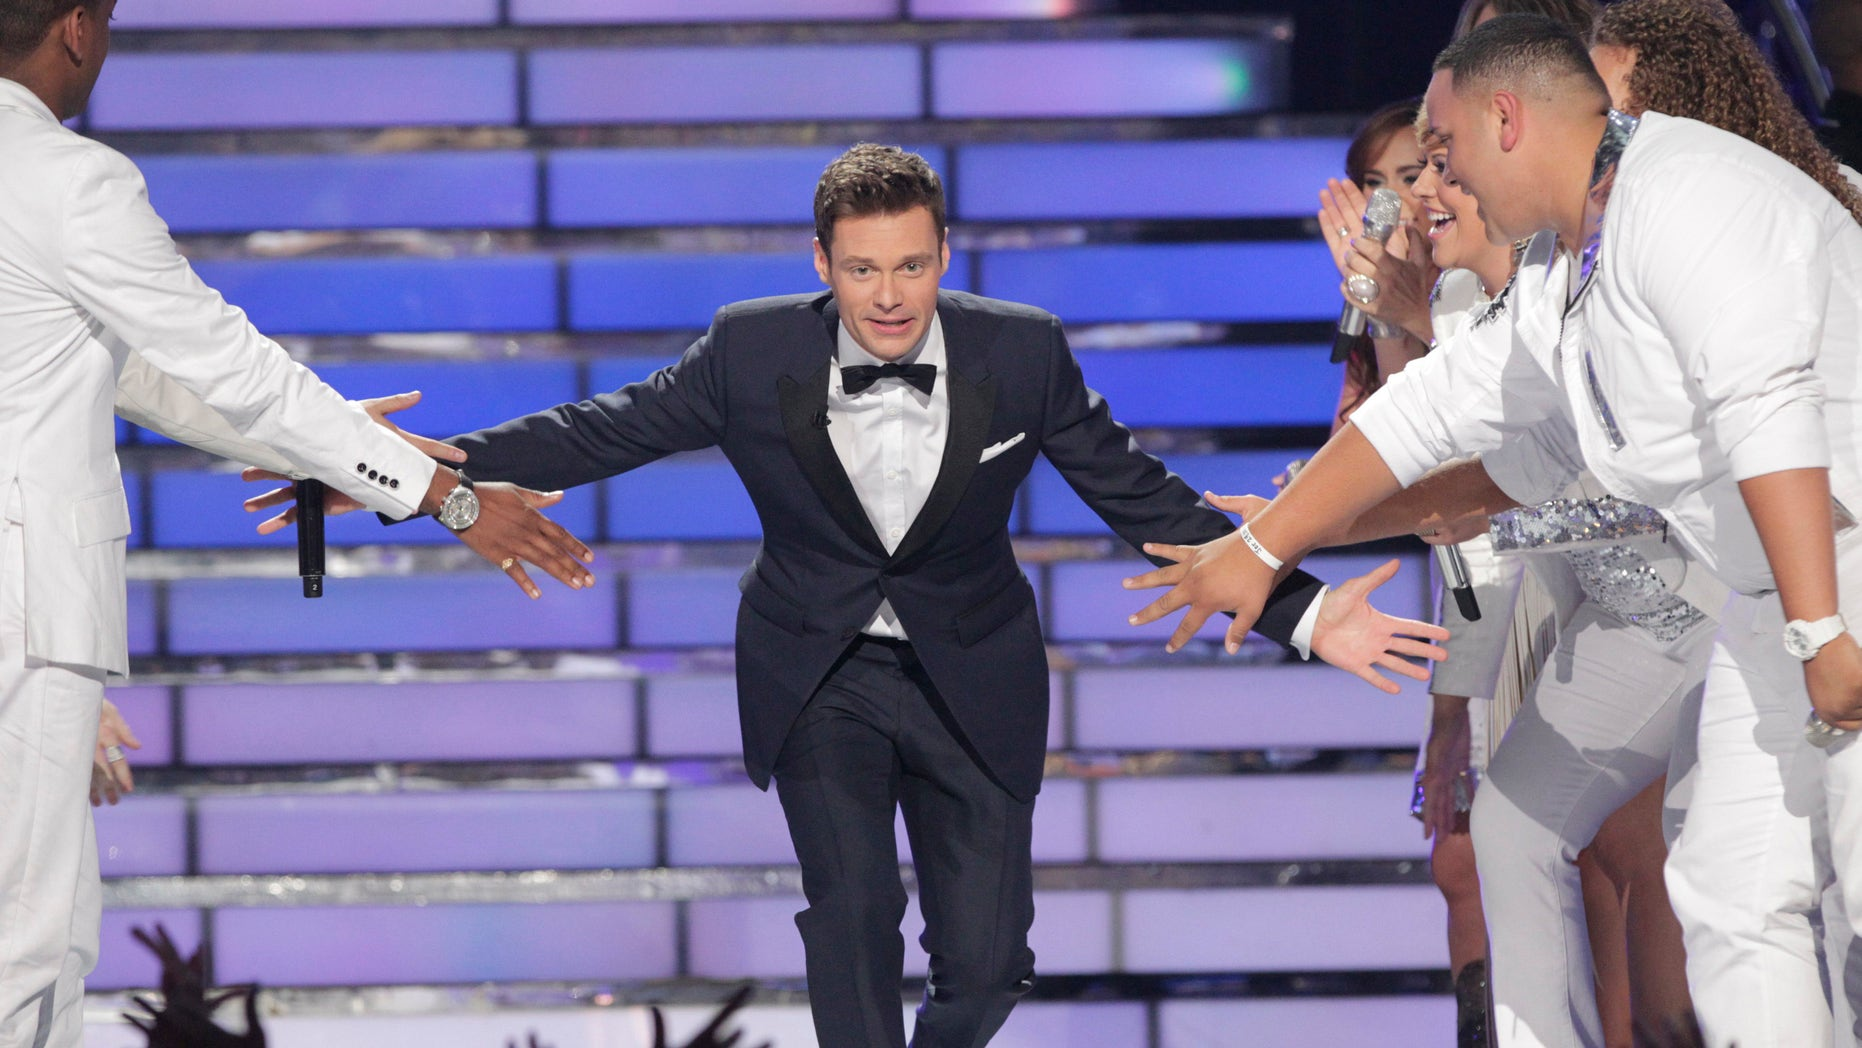 """Host Ryan Seacrest arrives on the stage during the 11th season finale of """"American Idol"""" in Los Angeles, California, May 23, 2012. REUTERS/Mario Anzuoni (UNITED STATES  - Tags: ENTERTAINMENT) - RTR32JHI"""